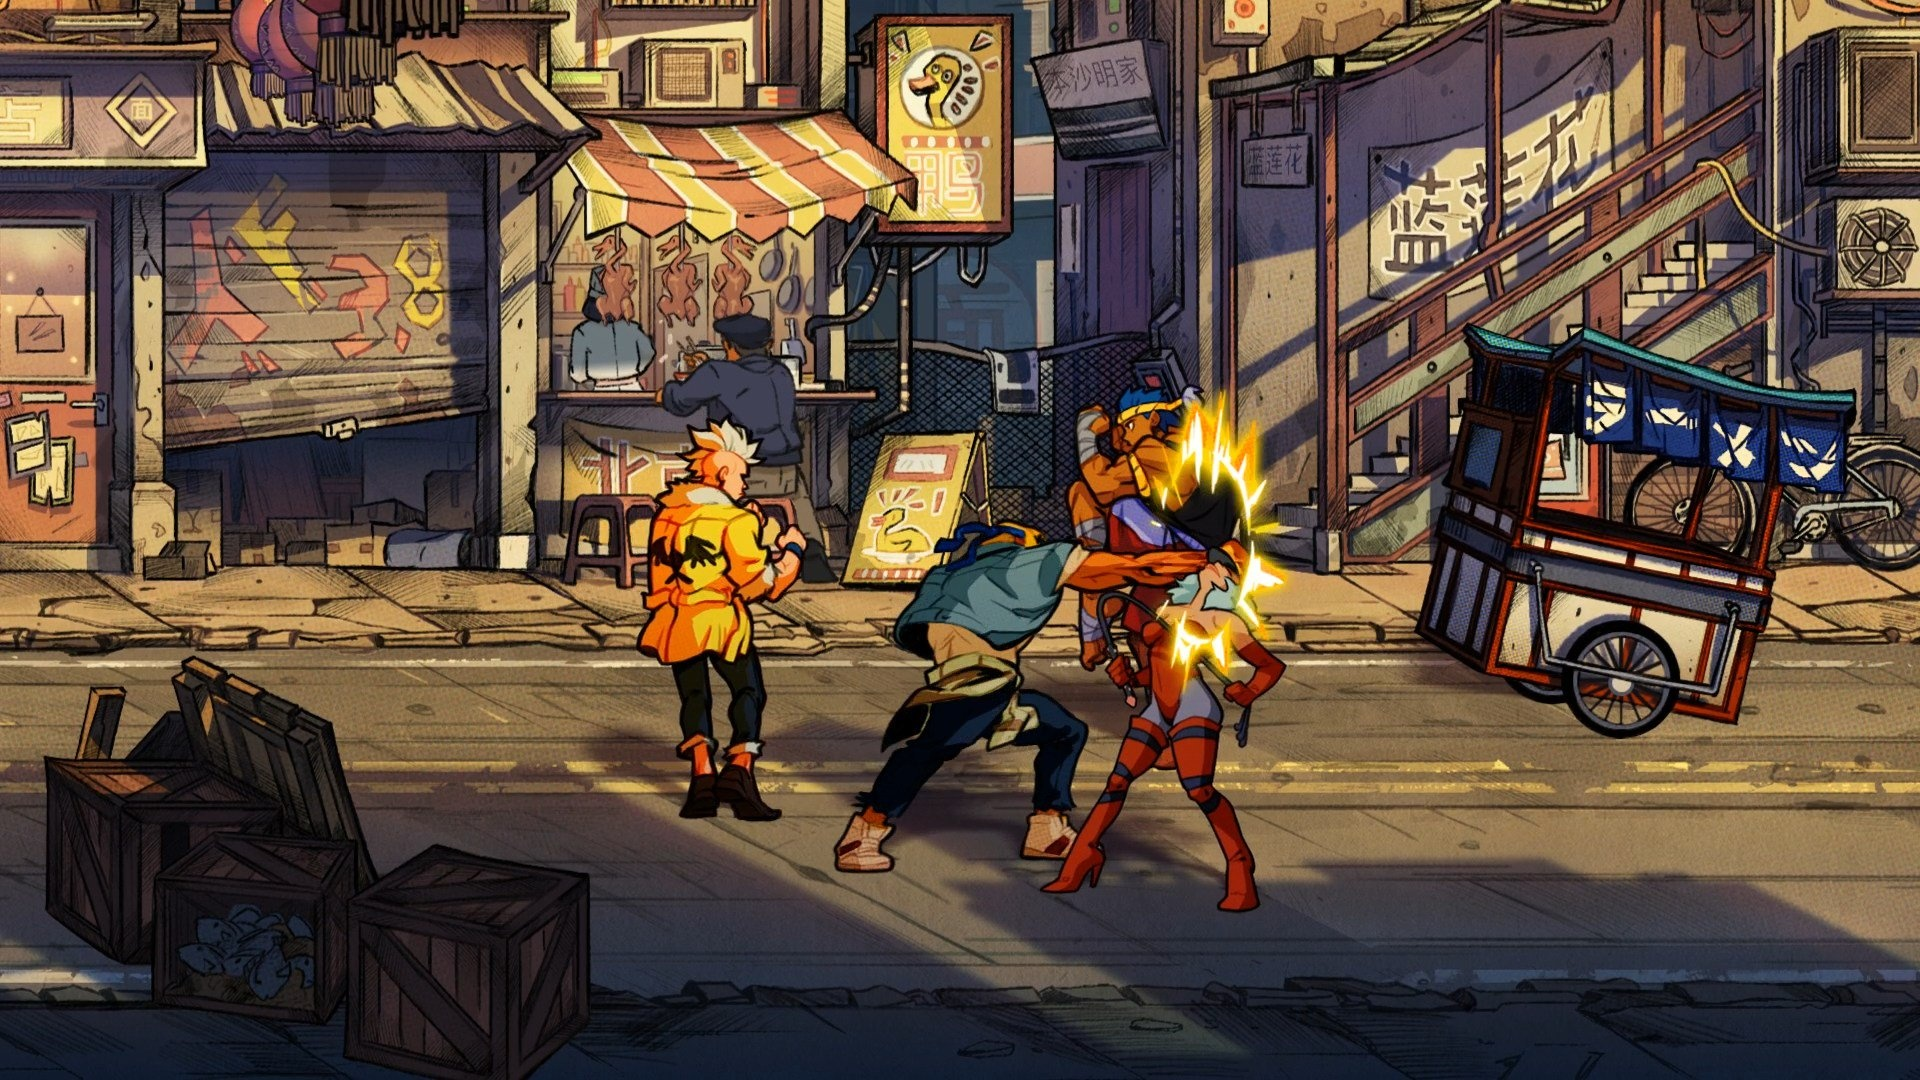 Streets Of Rage 4 Ps4 Playstation 4 Streets Of Rage 4 Ps4